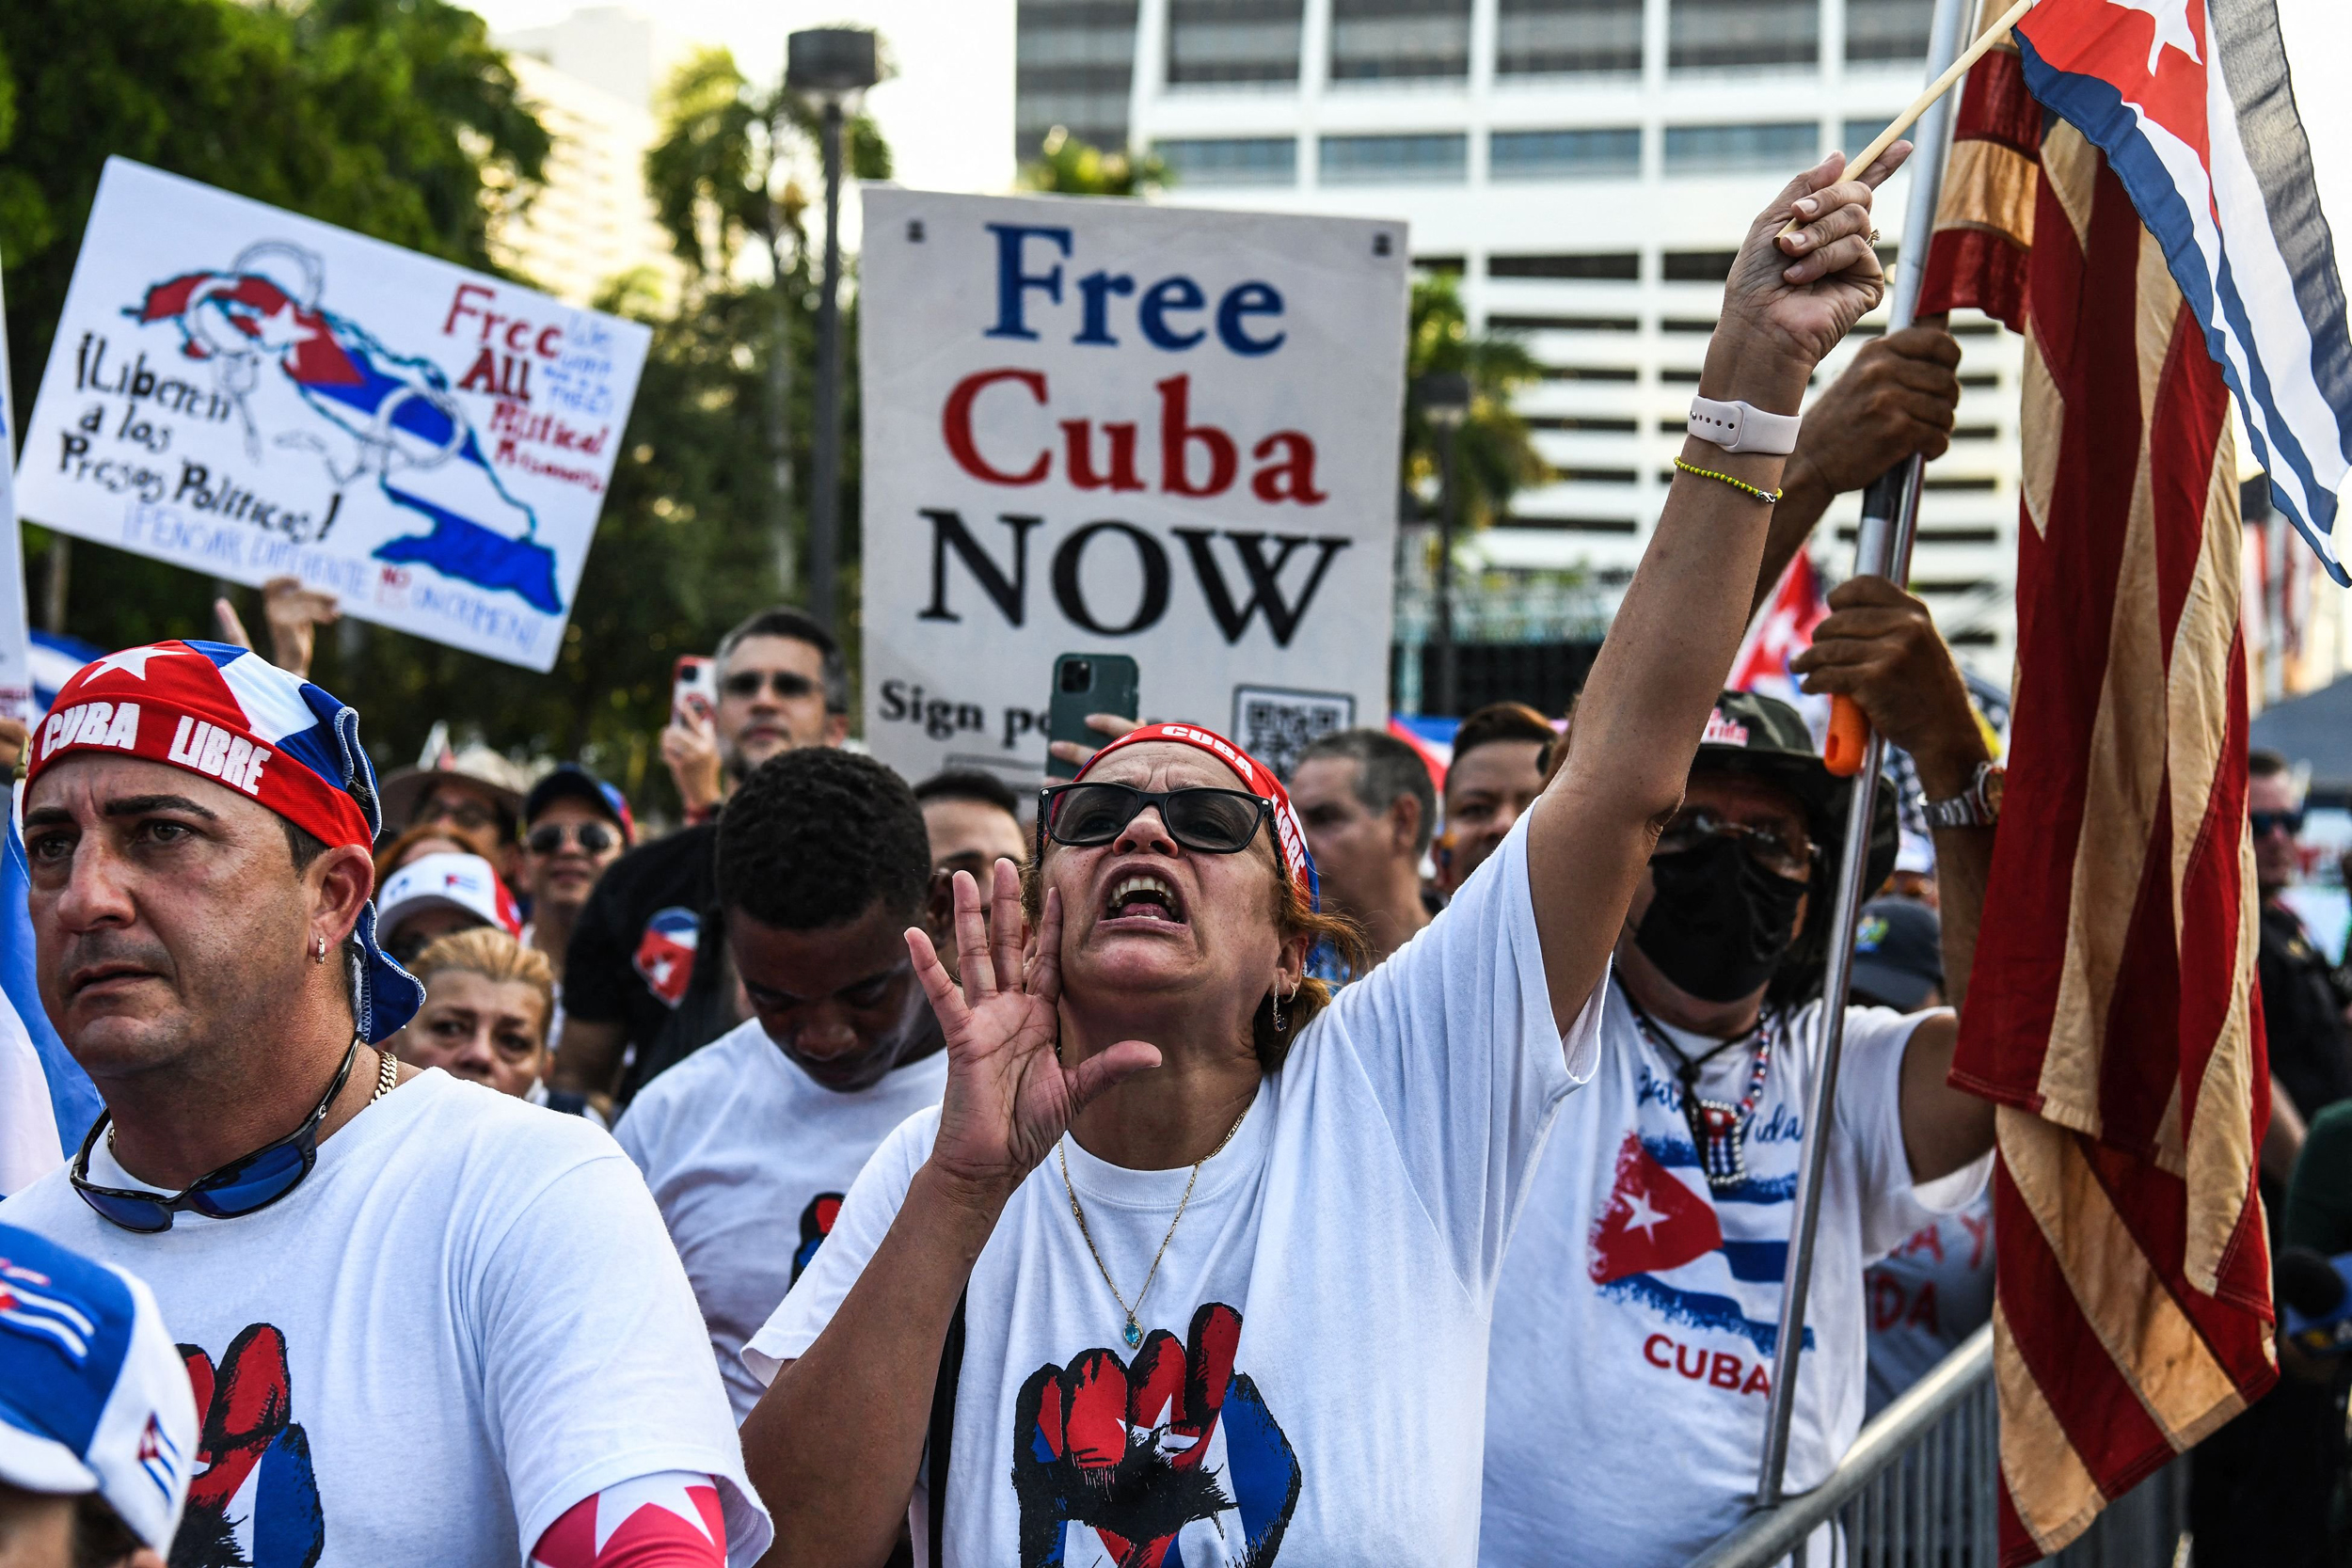 From internet access to military intervention, calls grow for tangible actions against Cuba